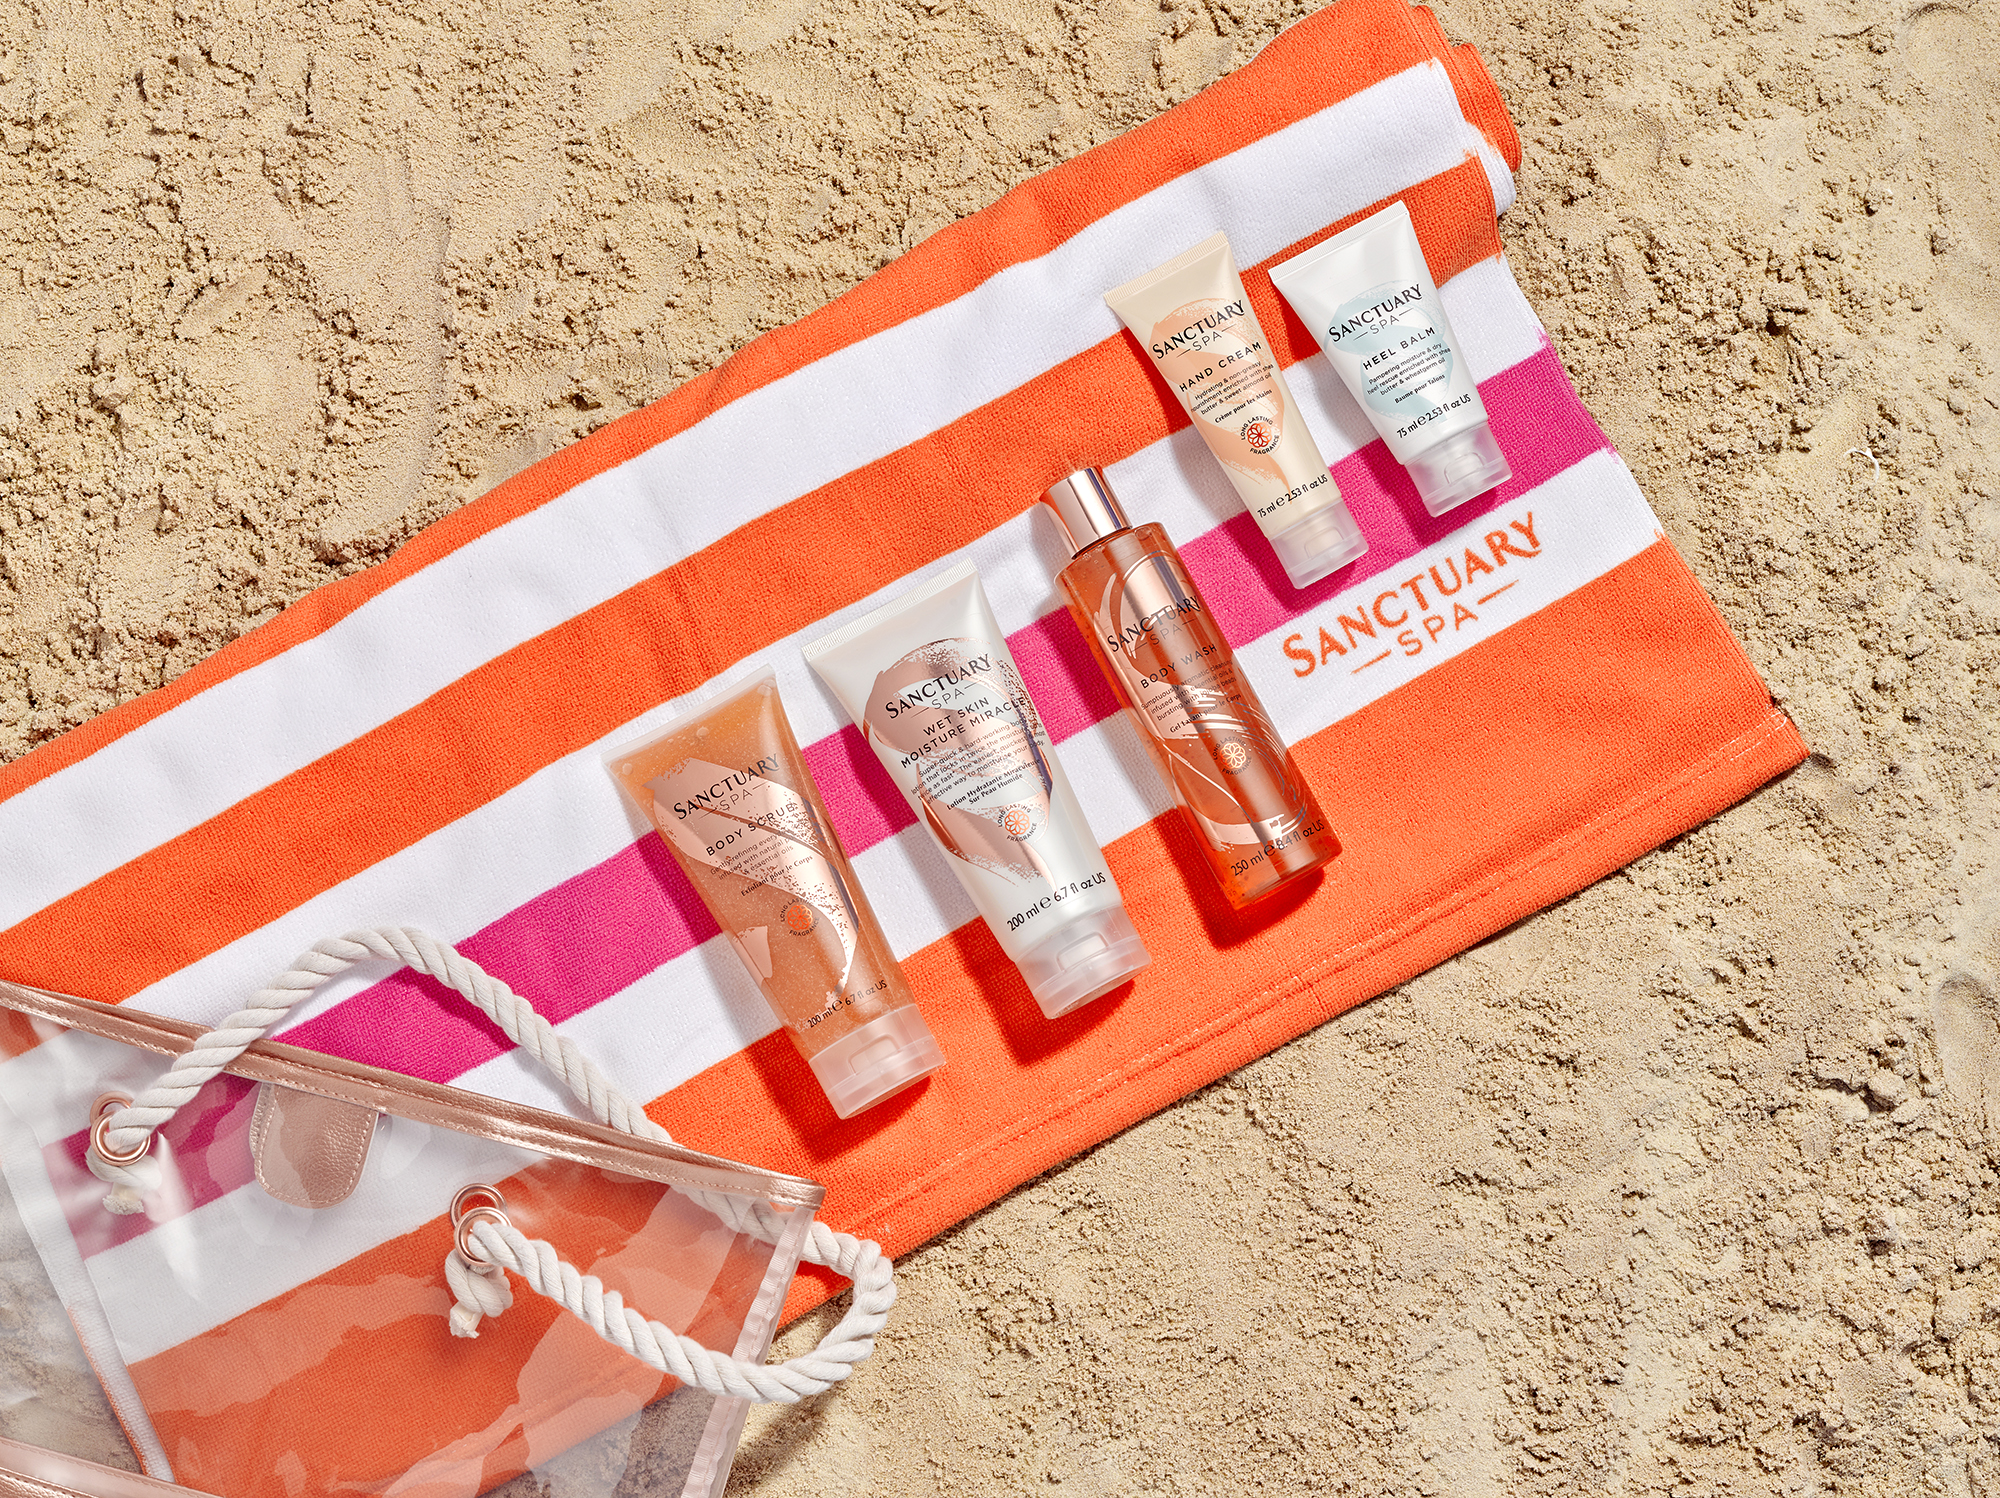 second image taken from a summer beach theme, Cosmetic products on towel and surrounded by sand.